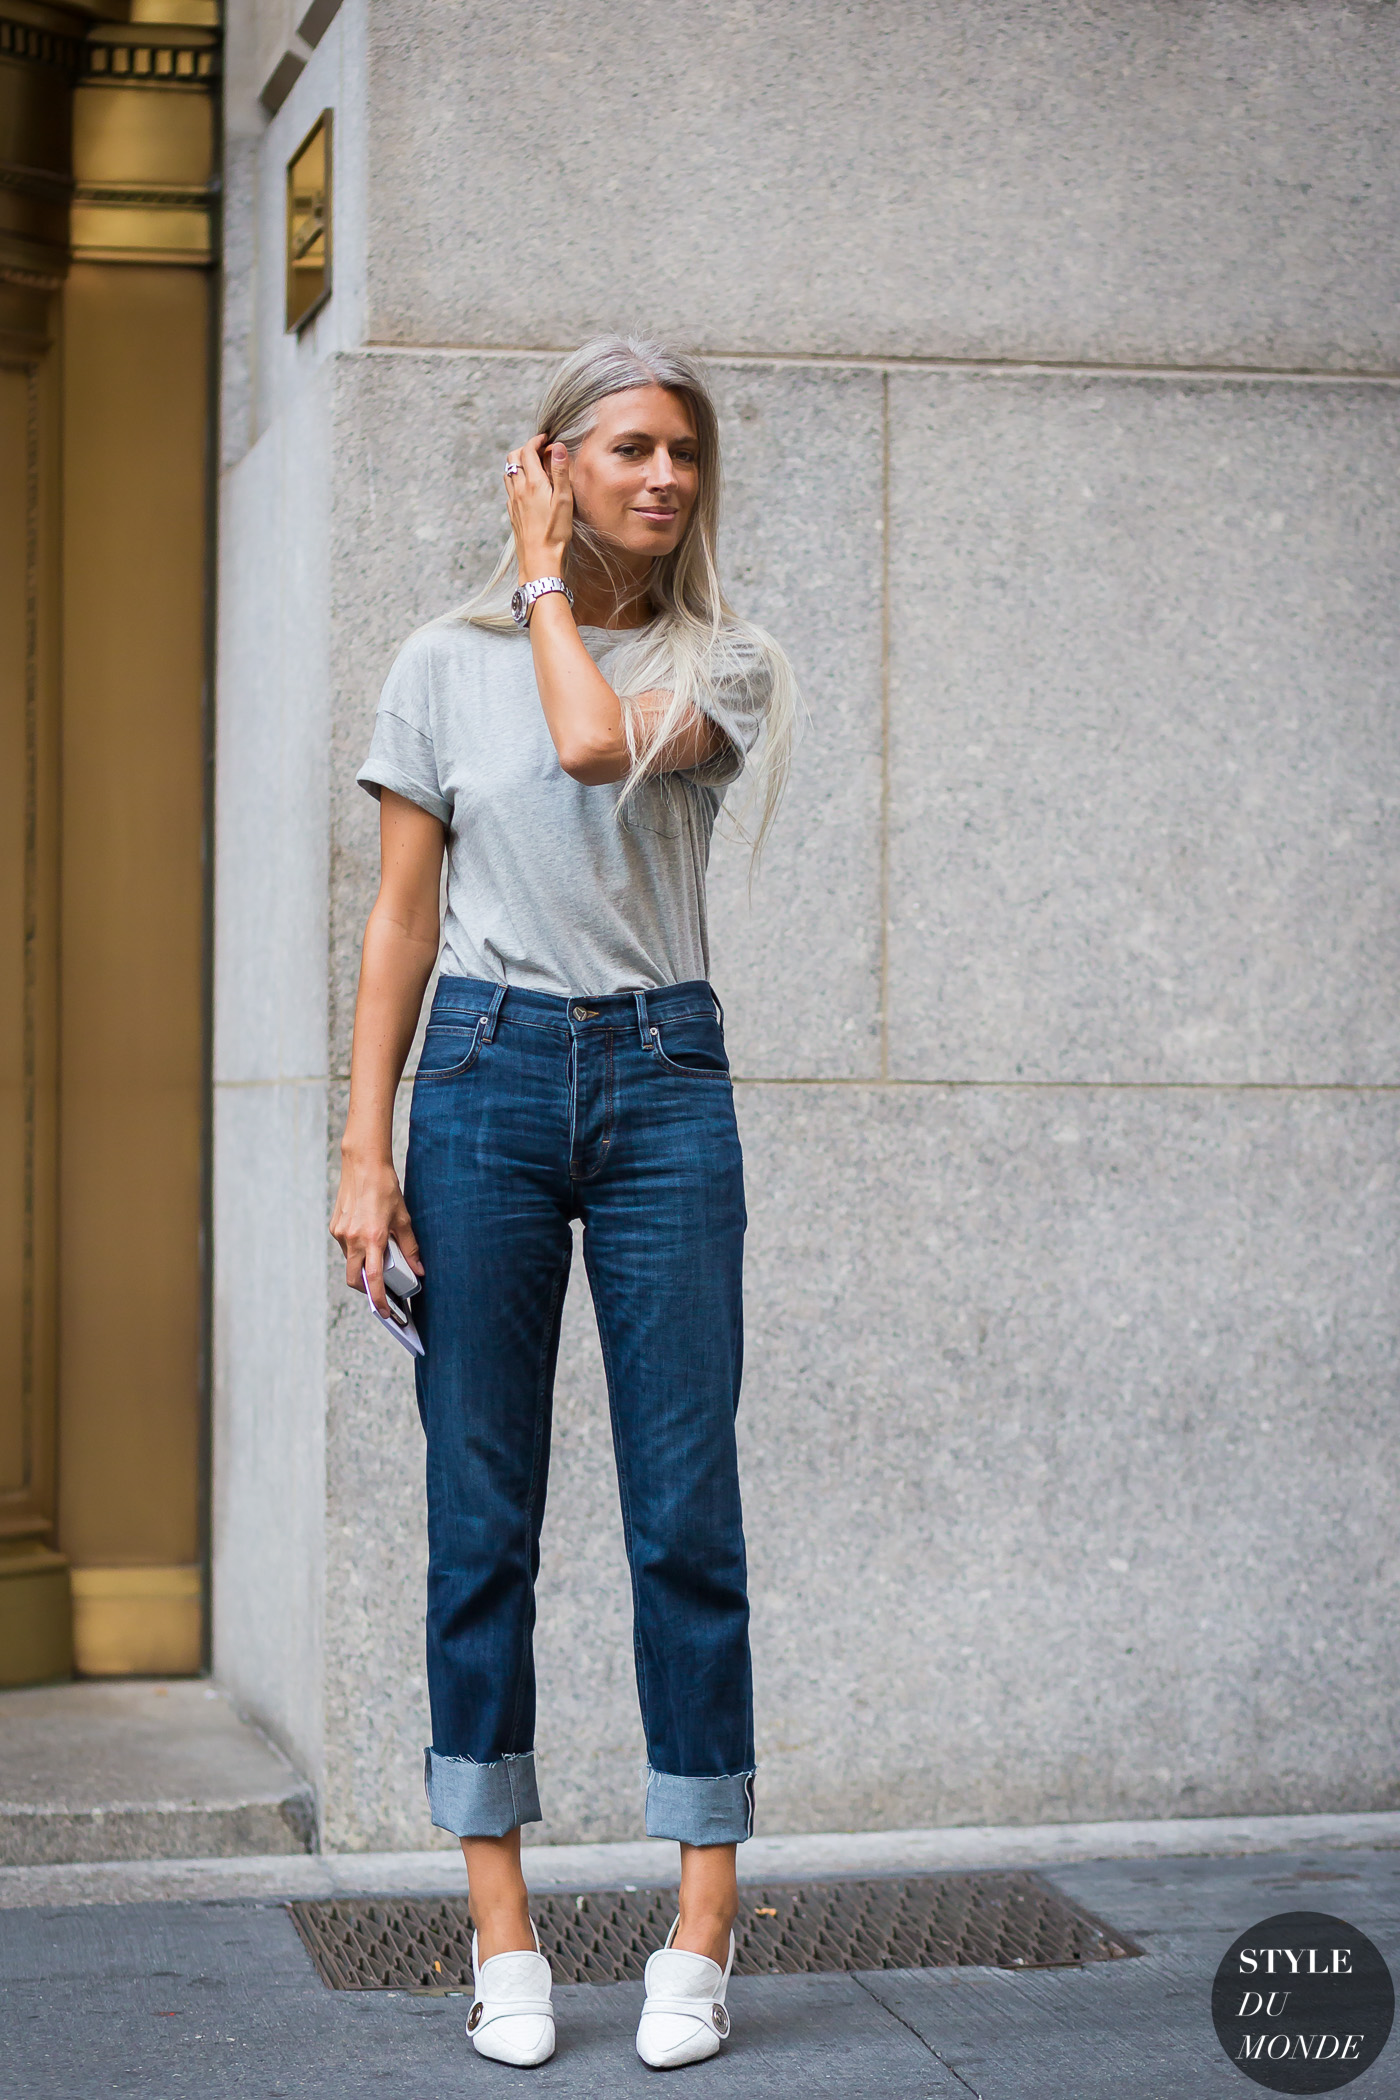 New York Fashion Week SS 2016 Street Style: Sarah Harris